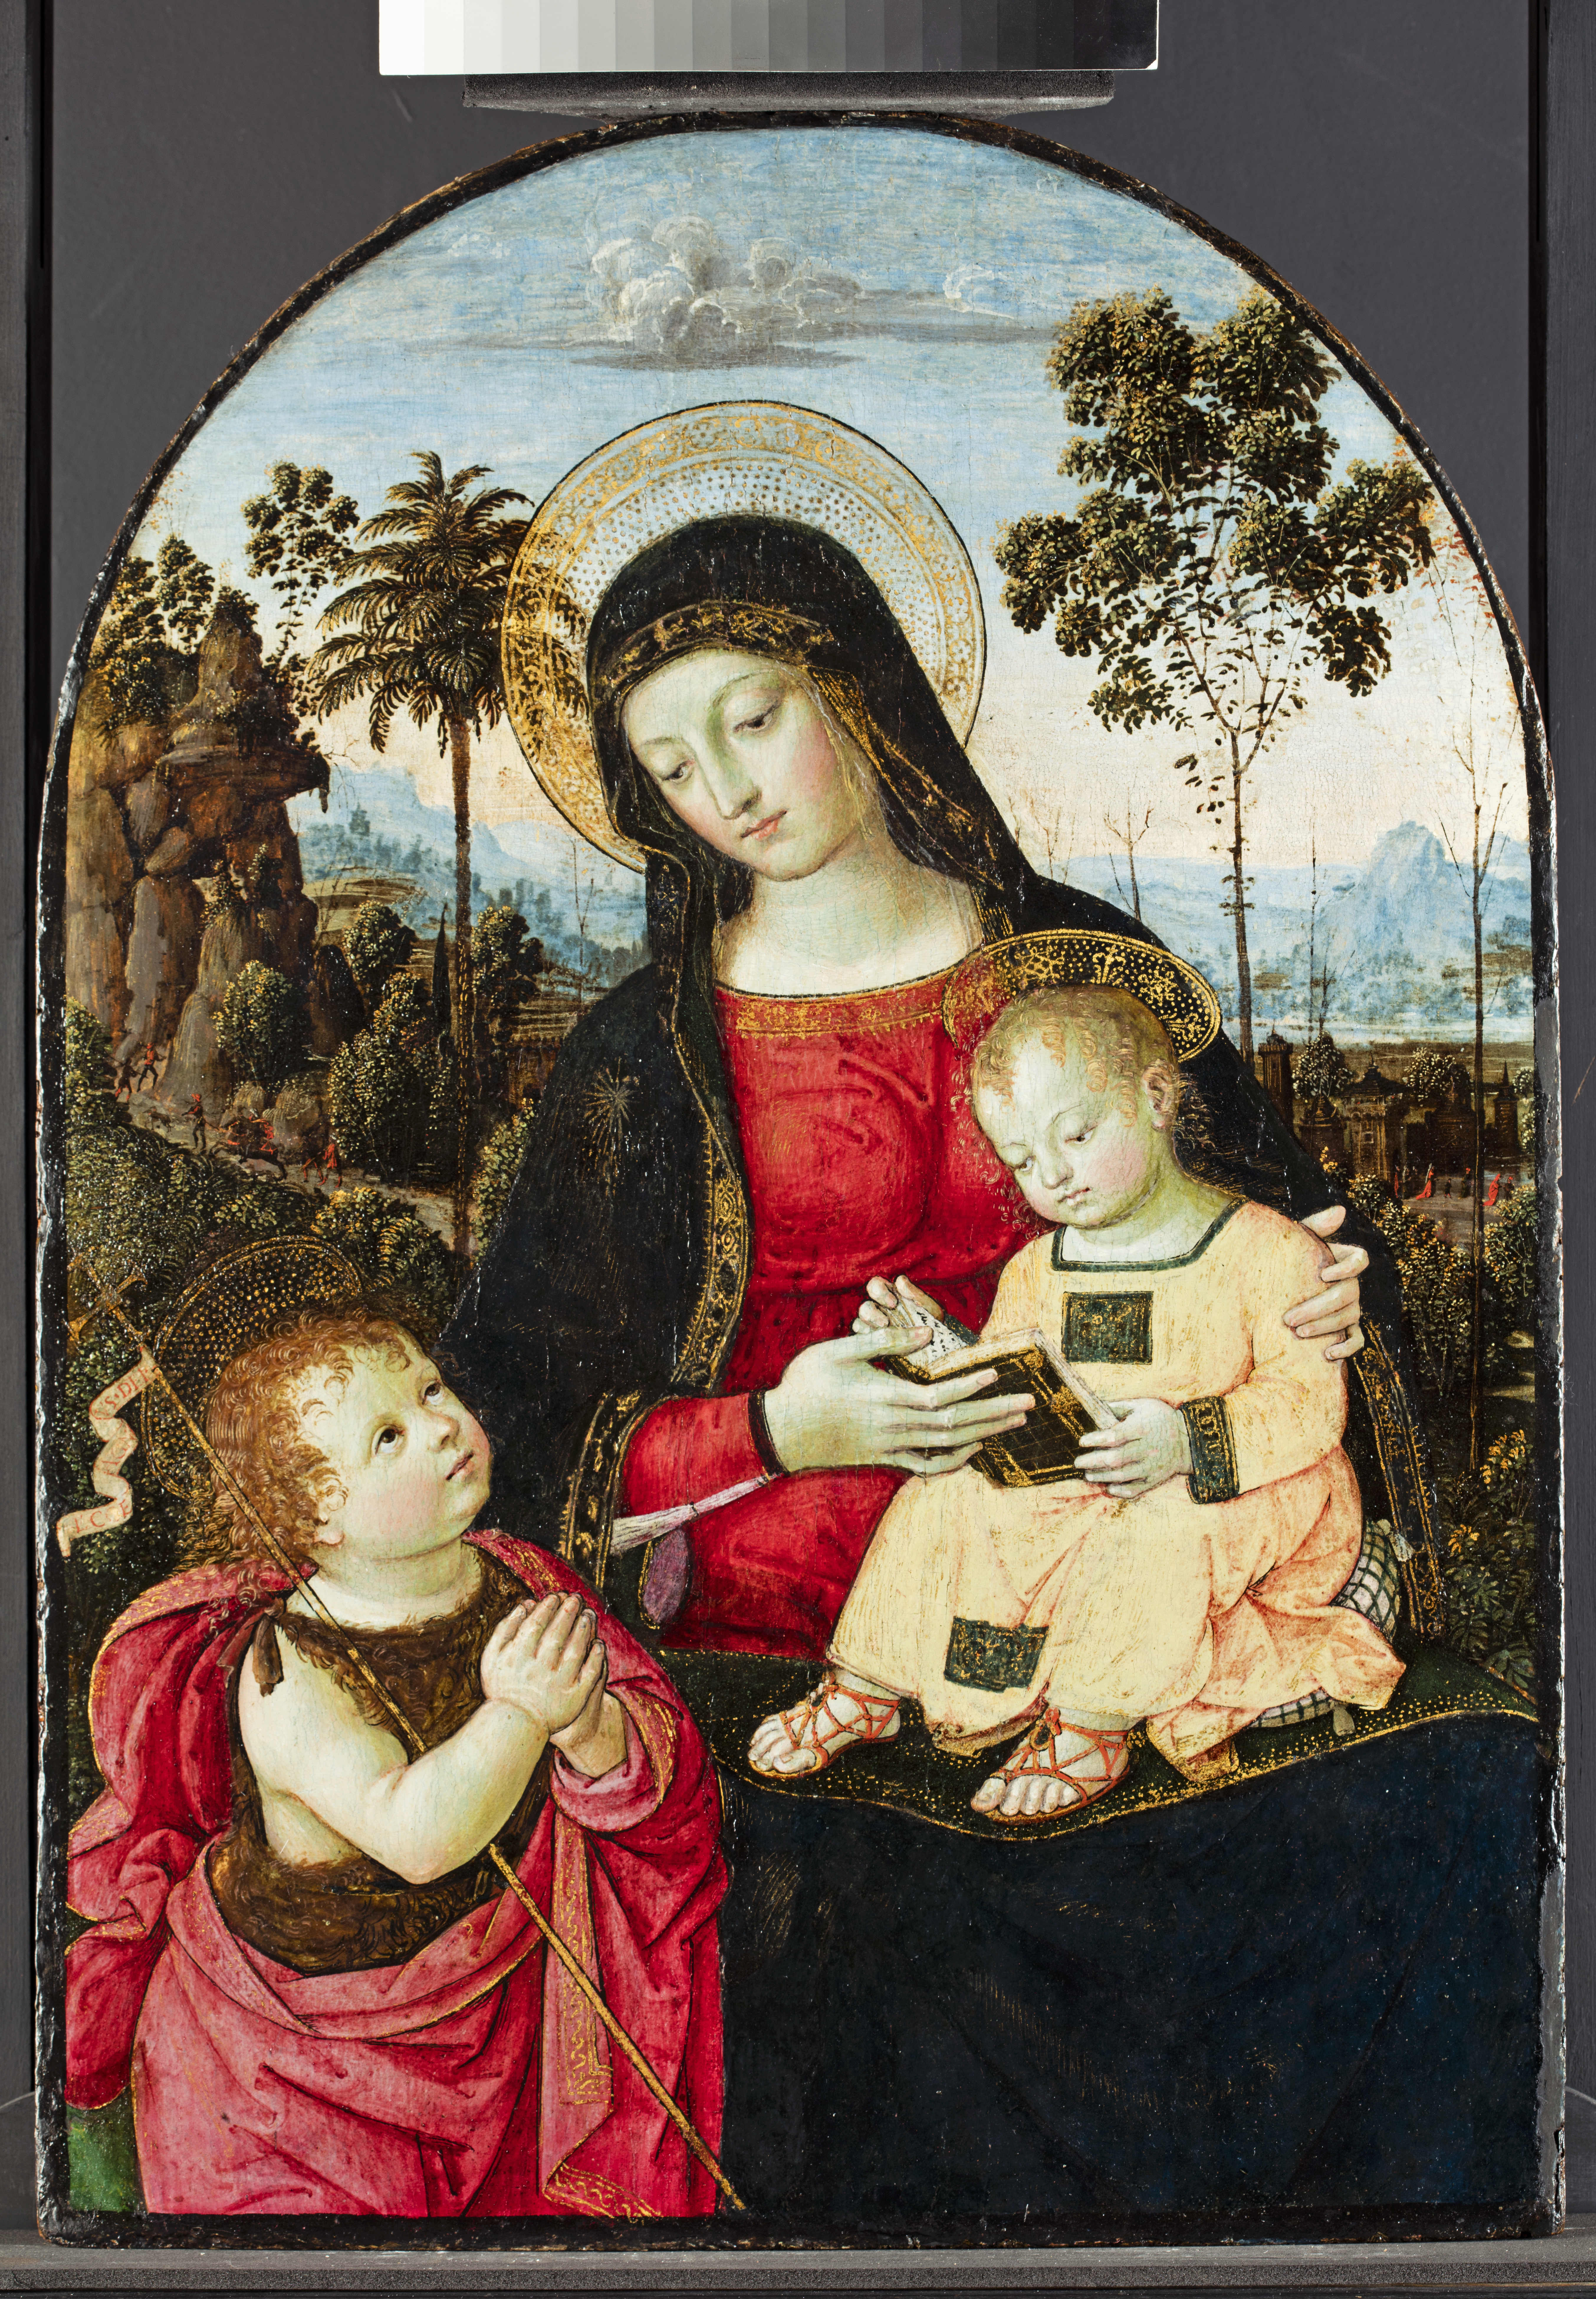 Fig. 7 Virgin and Child after treatment: Virgin and Child (©Titmus)